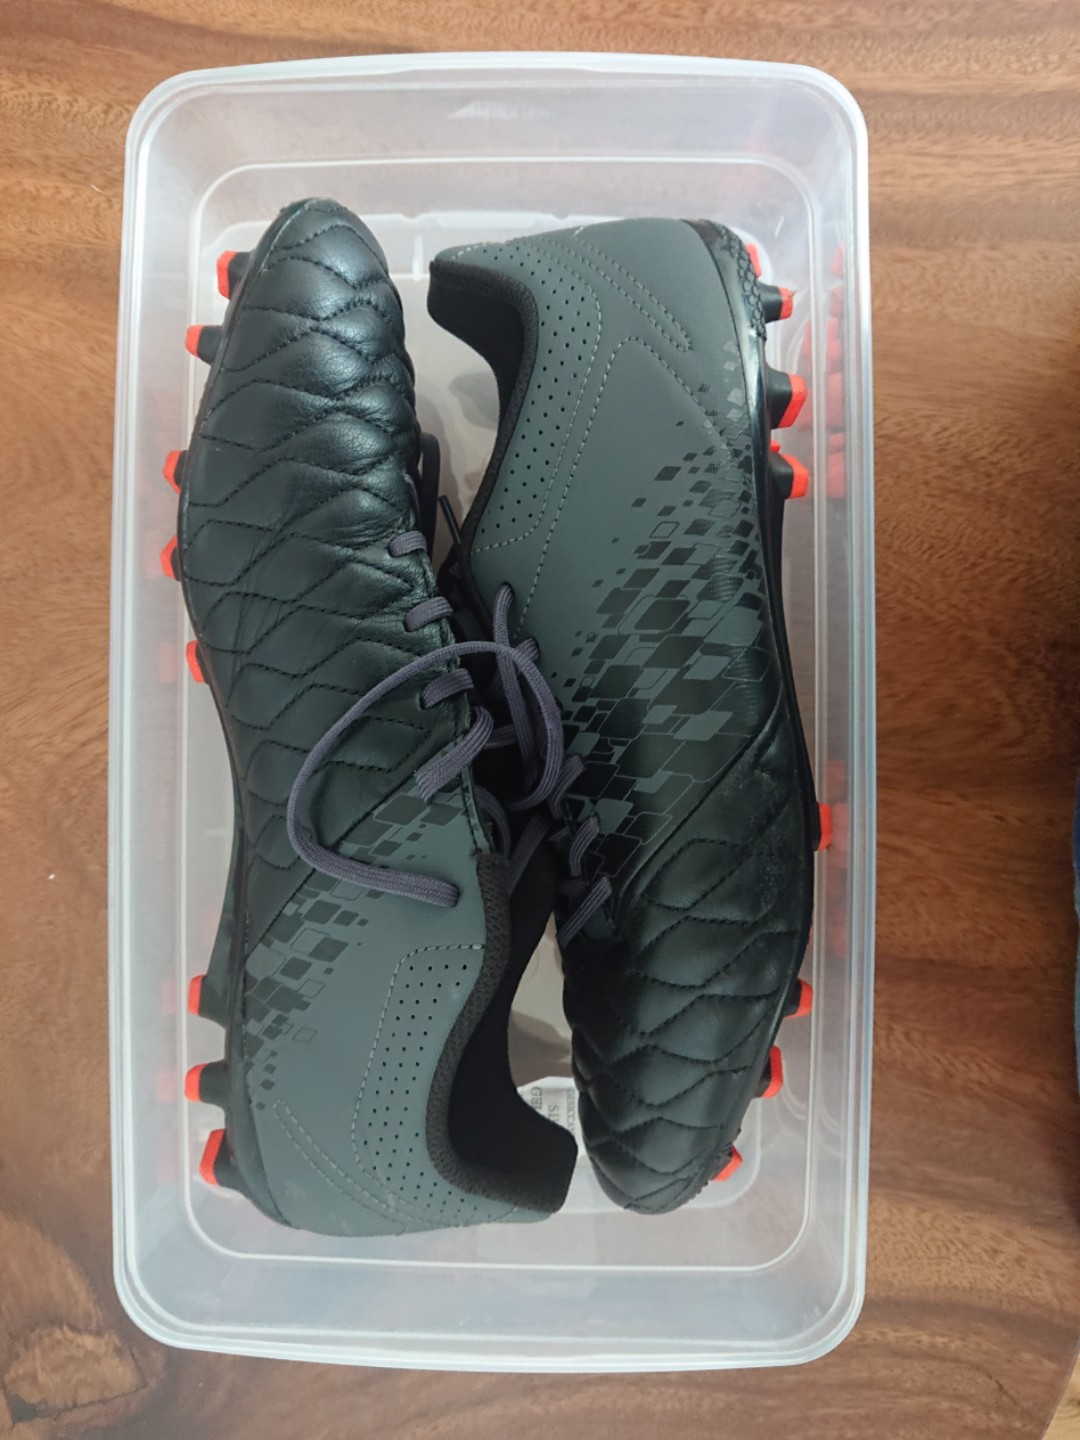 c2990bf7f AGILITY 700 AG ADULT FOOTBALL ARTIFICIAL GRASS BOOTS